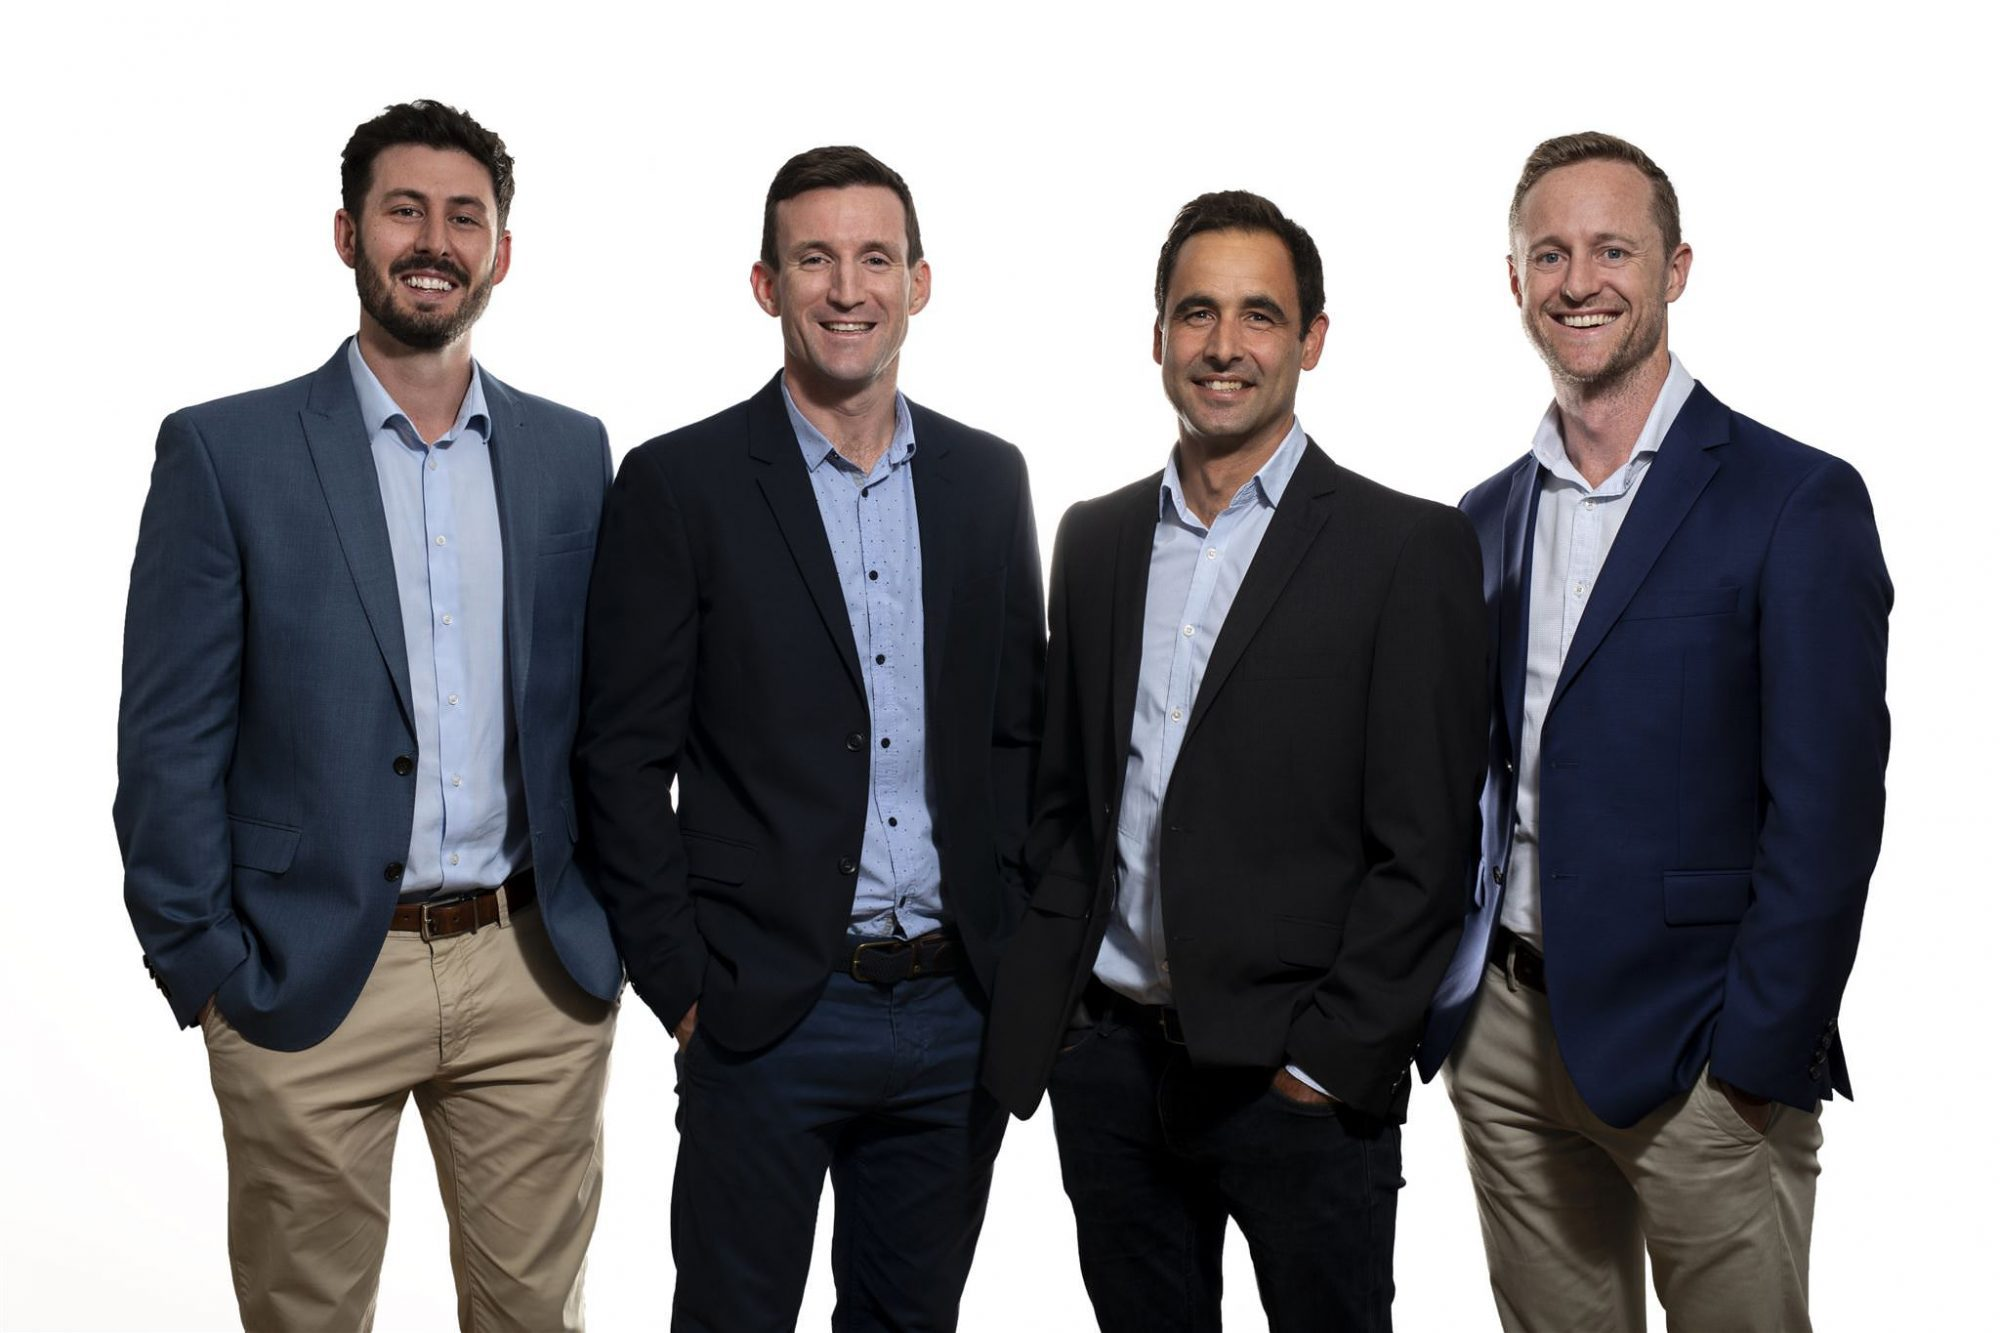 Business group photography for Perth Sports Medicine by Perth commercial photographer Dennis Tan Creative